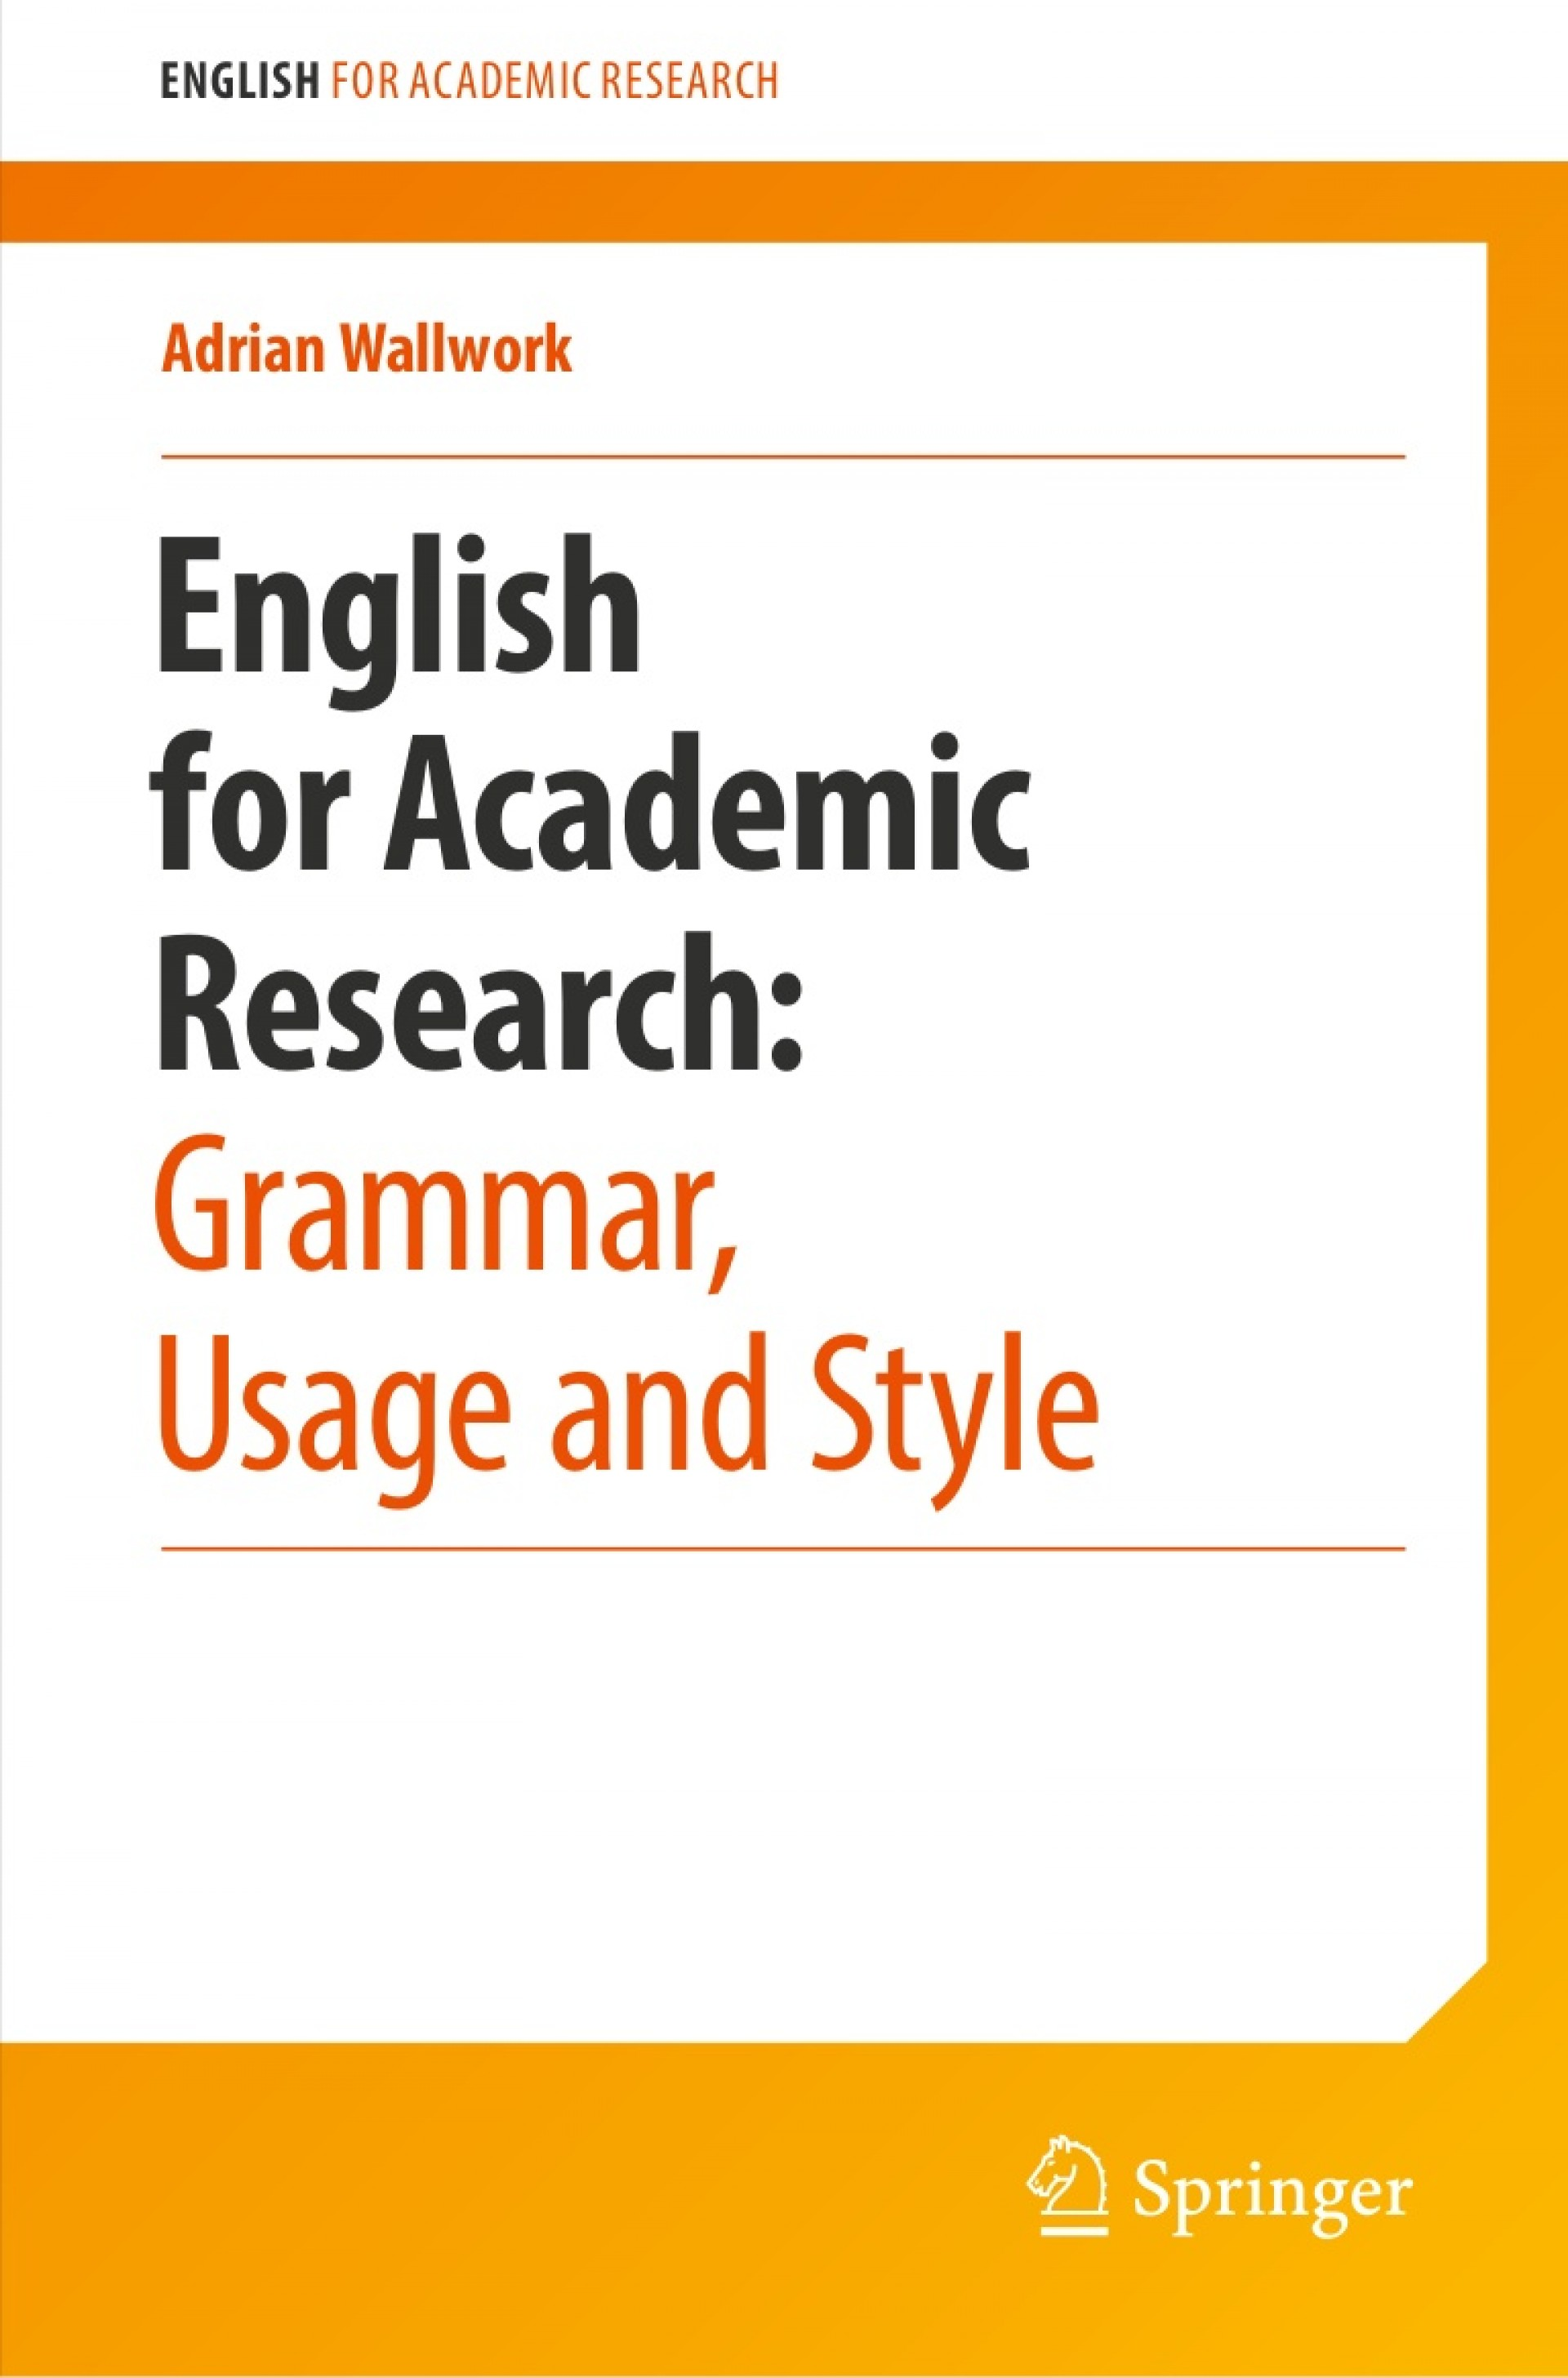 012 Englishforacademicresearchgrammarusageandstyle Thumbnail Research Paper English For Writing Papers Adrian Wallwork Marvelous Pdf 2011 1920